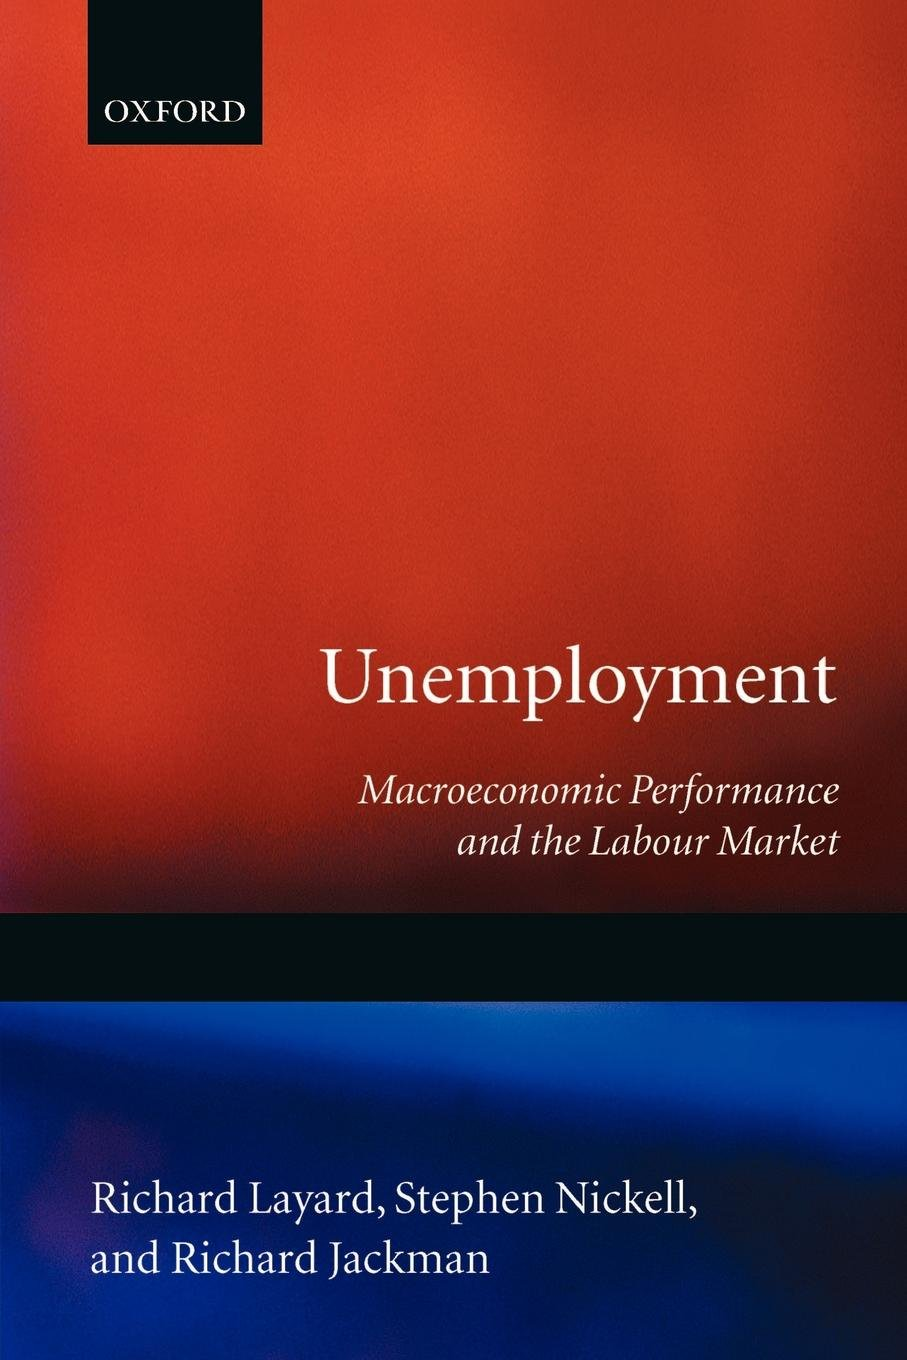 Unemployment: Macroeconomic Performance and the Labour Market by Oxford University Press